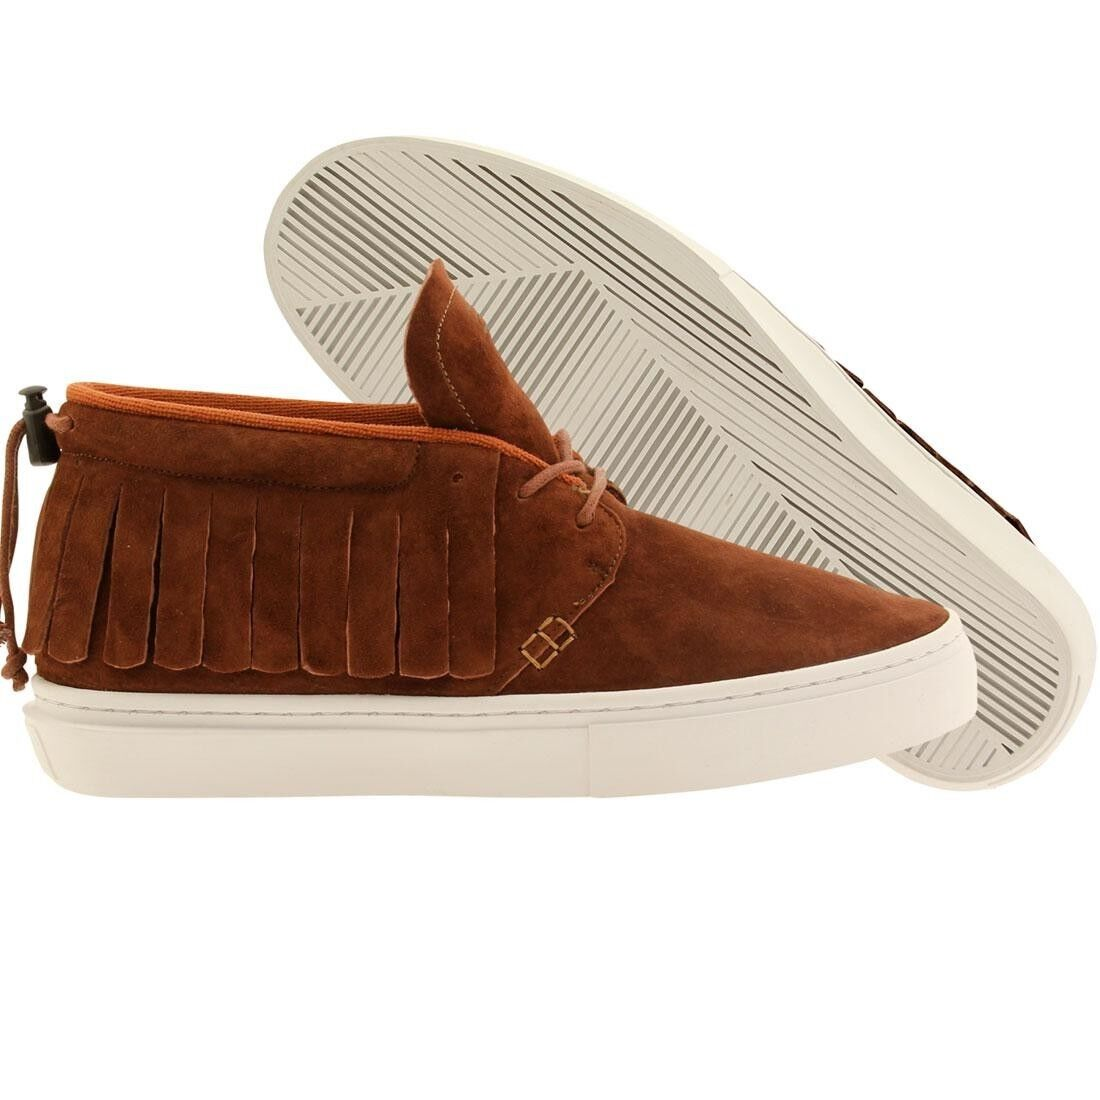 99.99 Clear Weather Men The One-O-One brown henna suede CRW101HEN